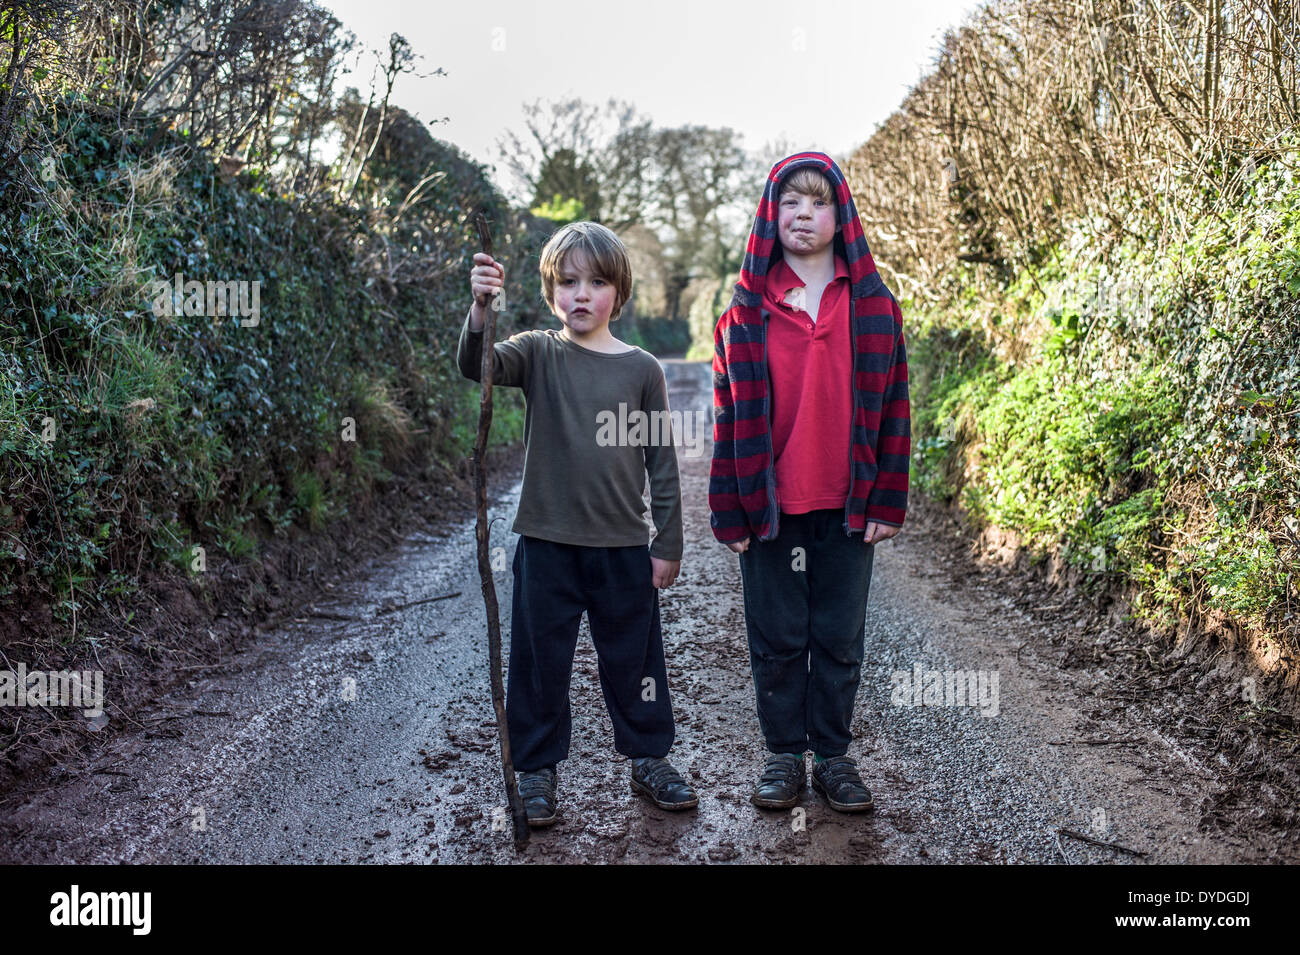 Two boys in a muddy lane. - Stock Image